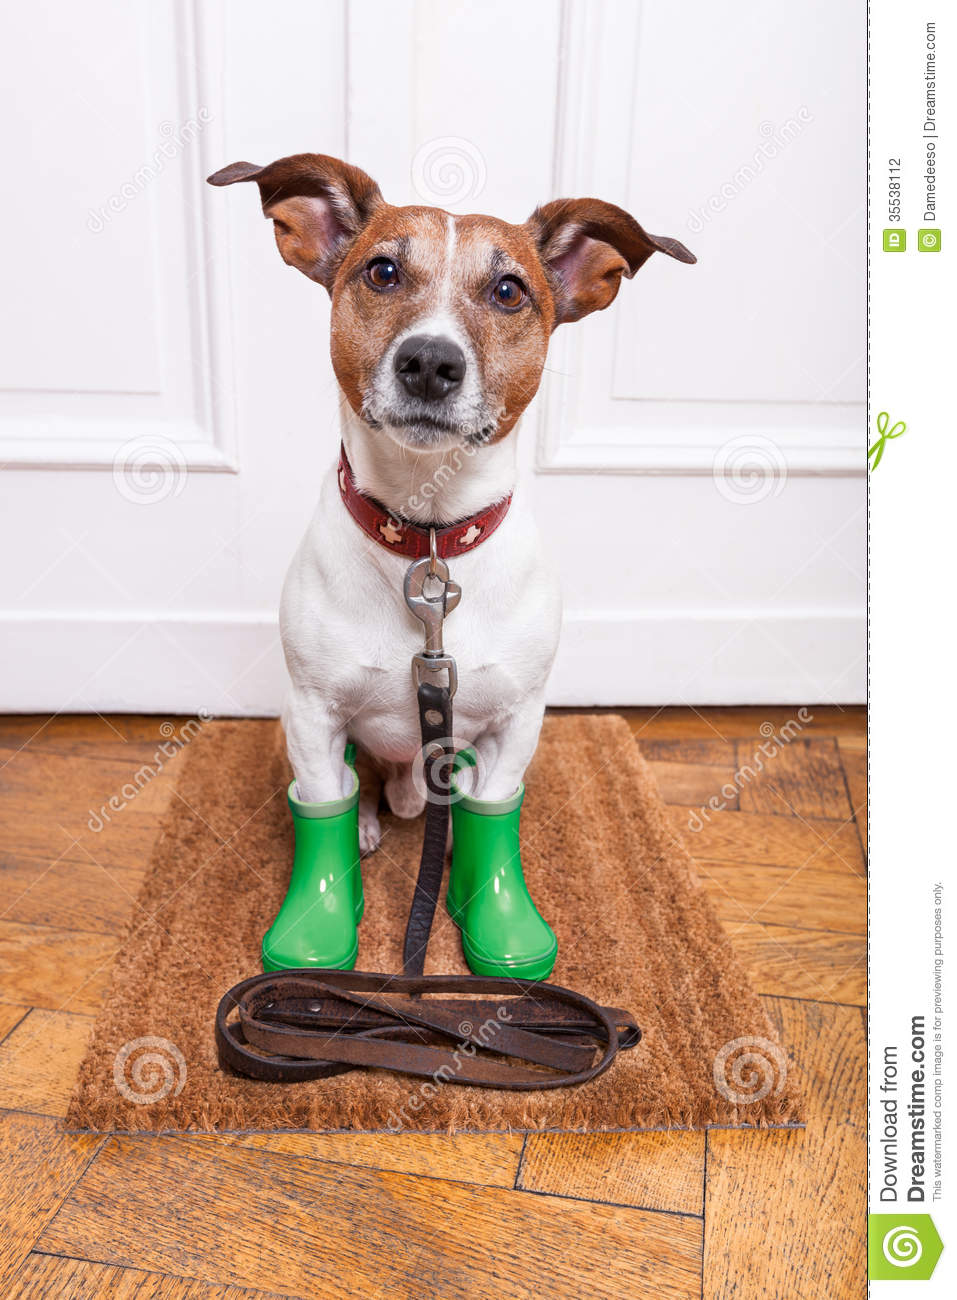 Dog Rubber Rain Boots Stock Photography Image 35538112